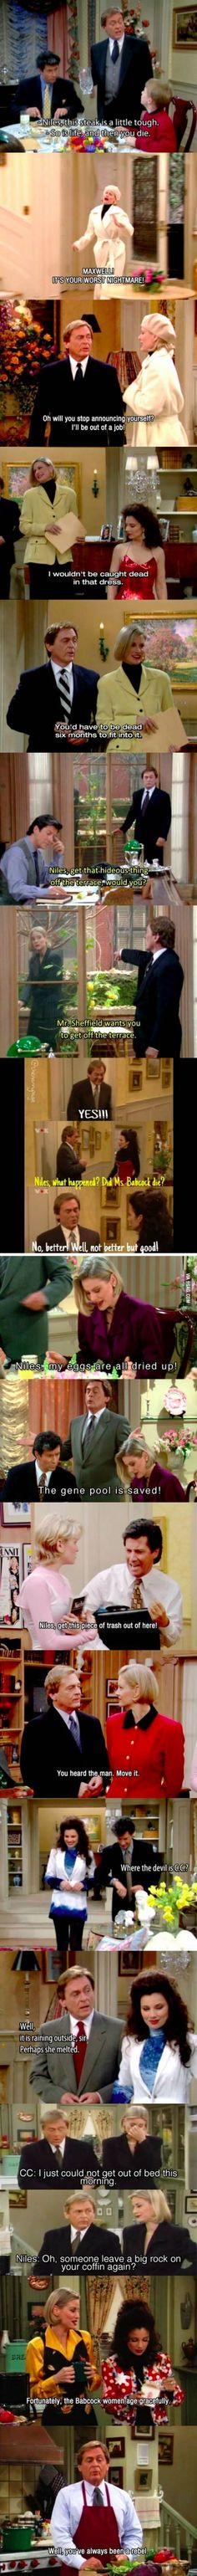 I miss The Nanny, Niles' burns were the best!